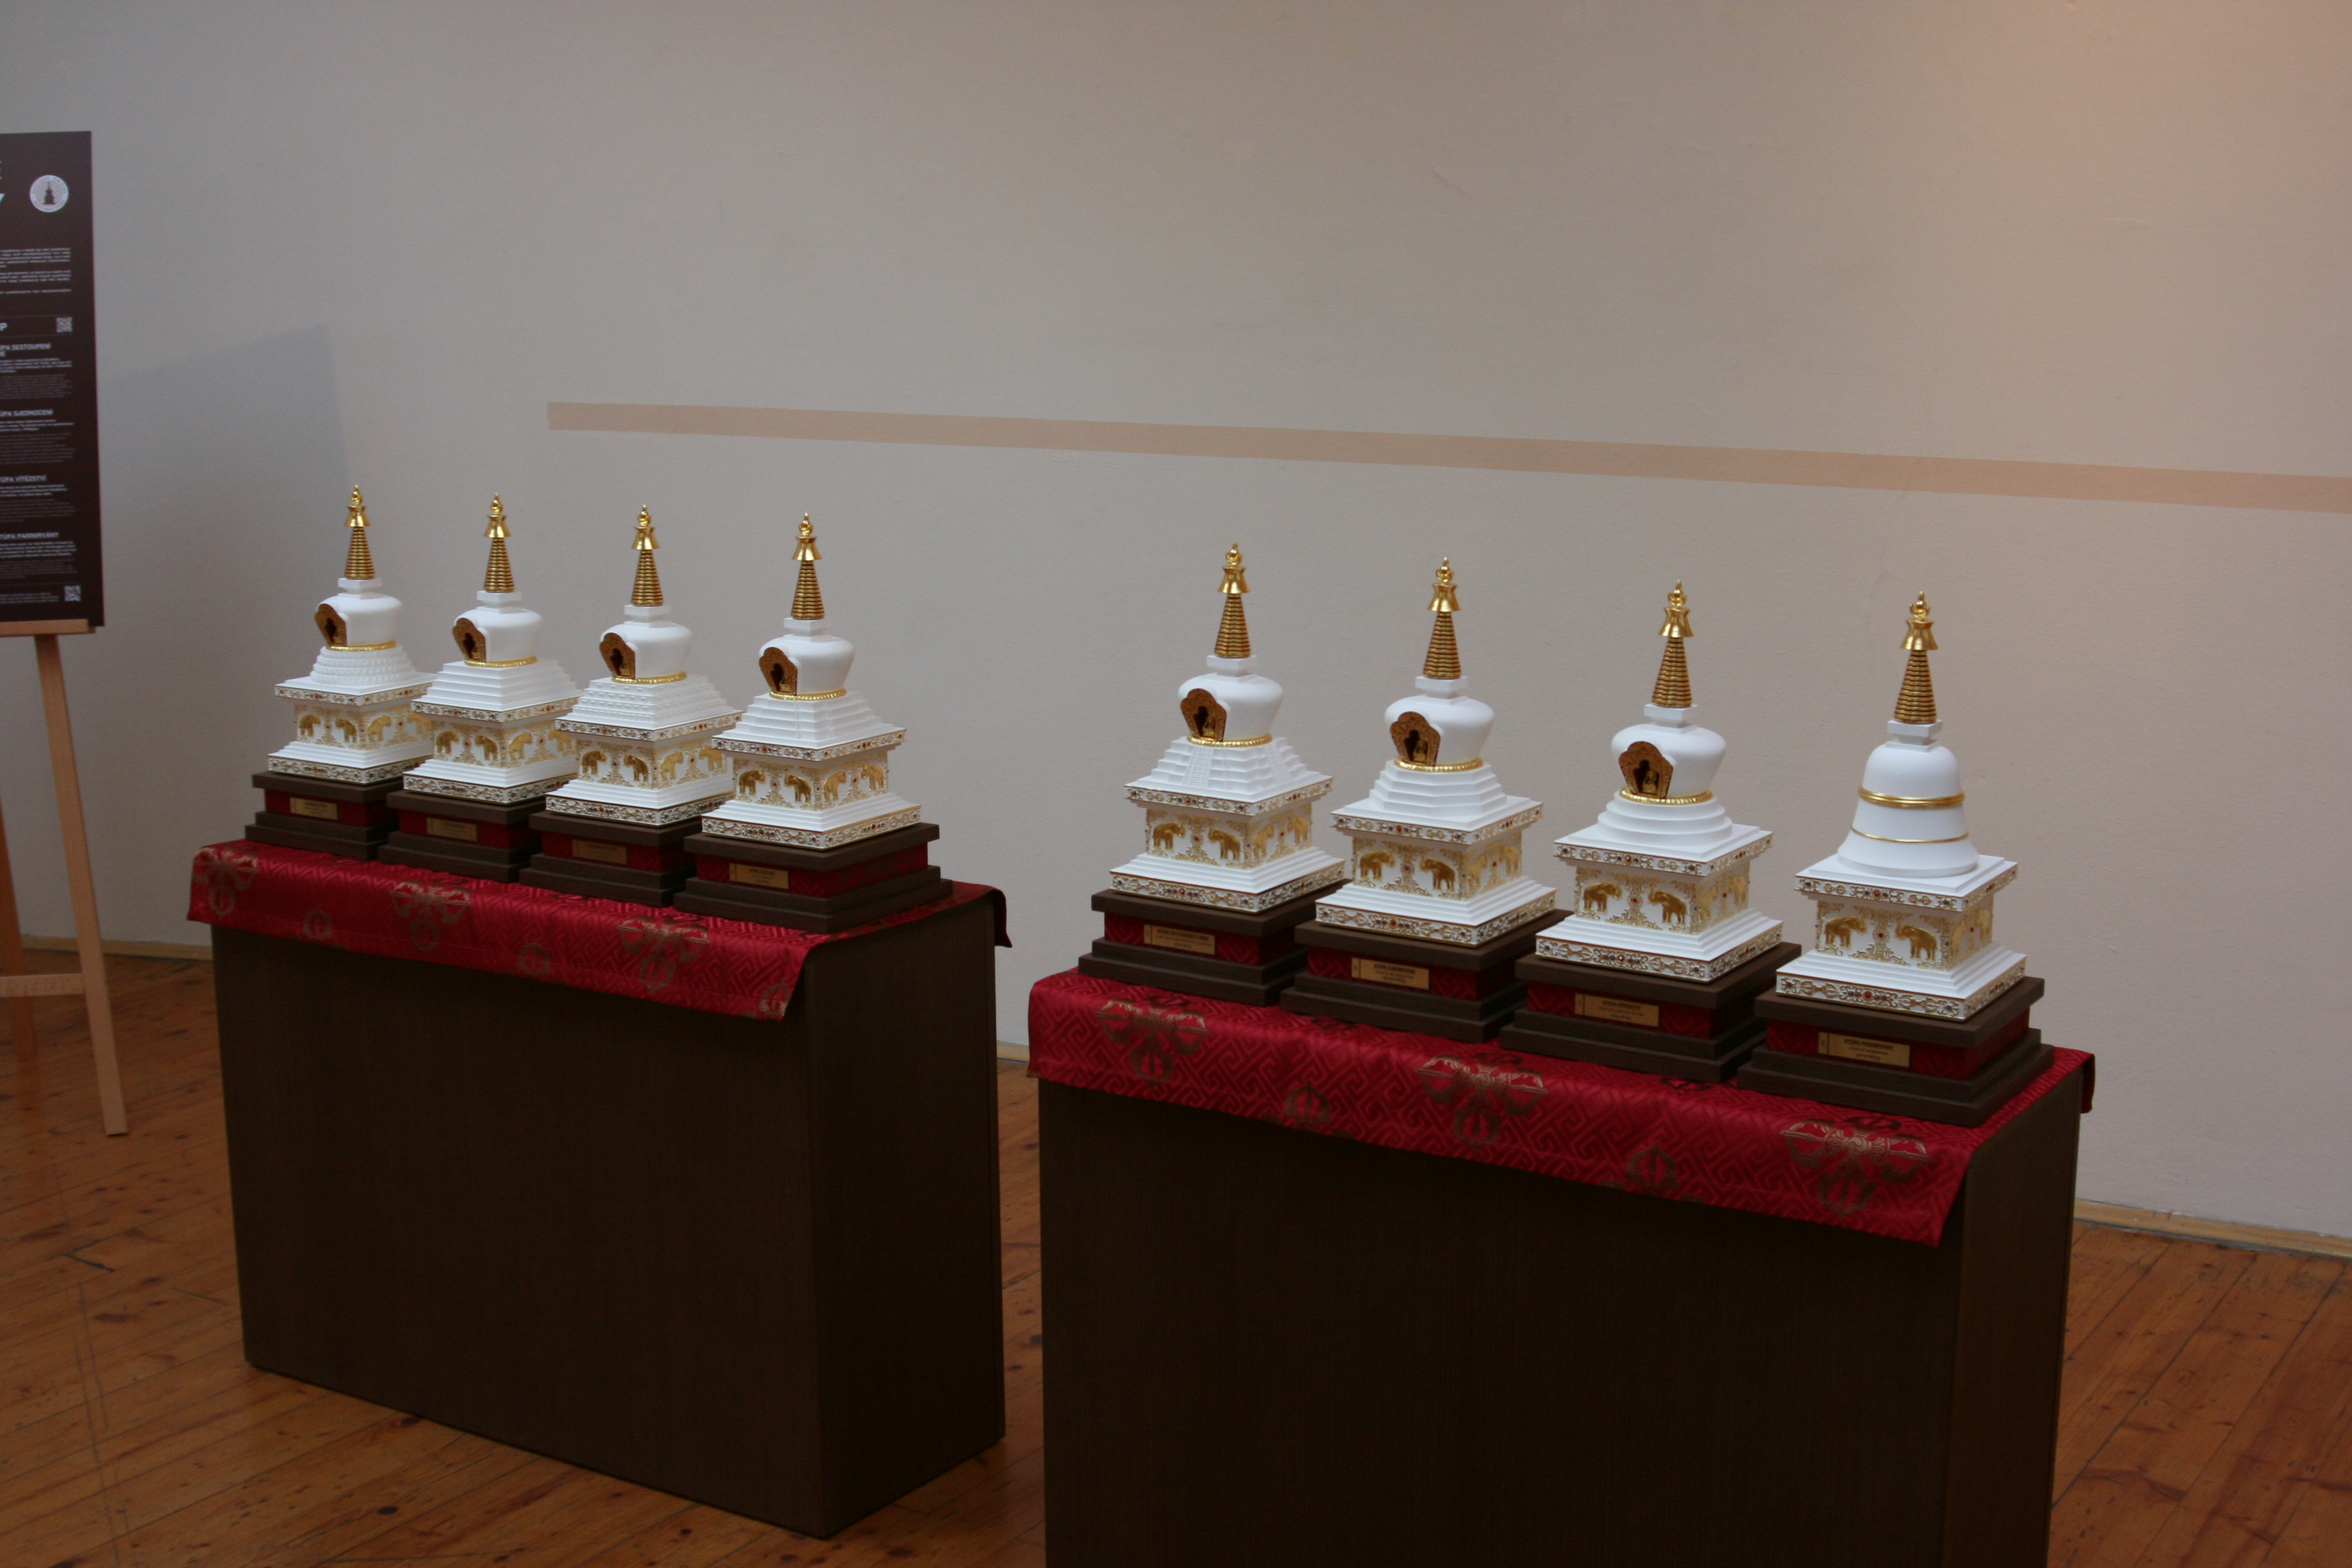 vystava tibet open house 4